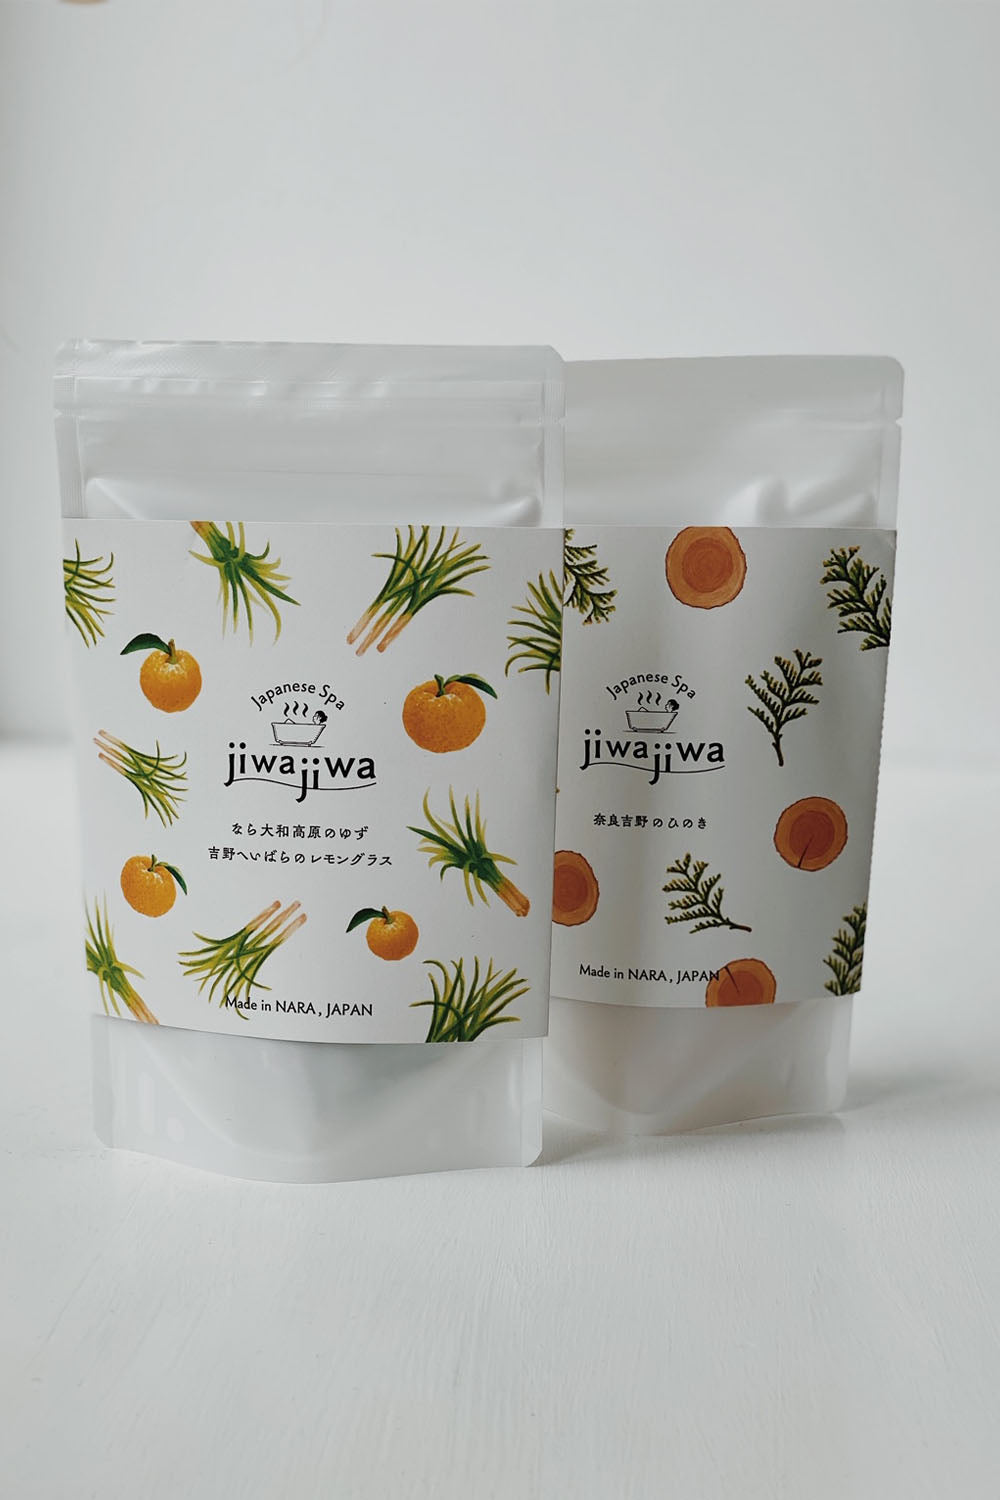 JiwaJiwa Bath Herb - Yuzu and Lemongrass - 3 Piece